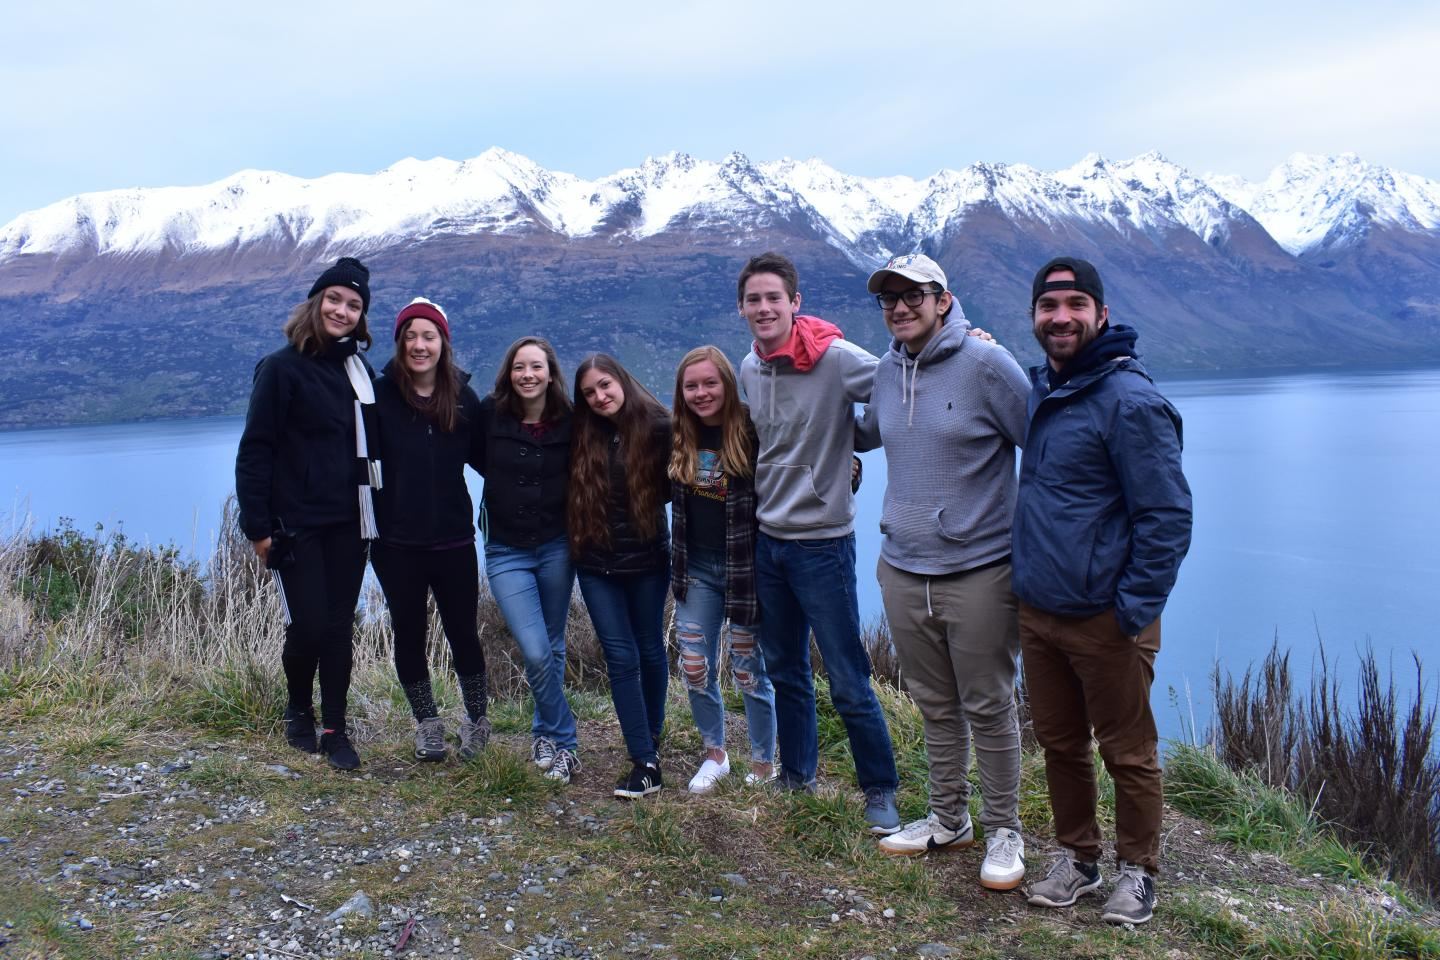 Teenage travelers visit lake and mountains during summer youth travel program in New Zealand